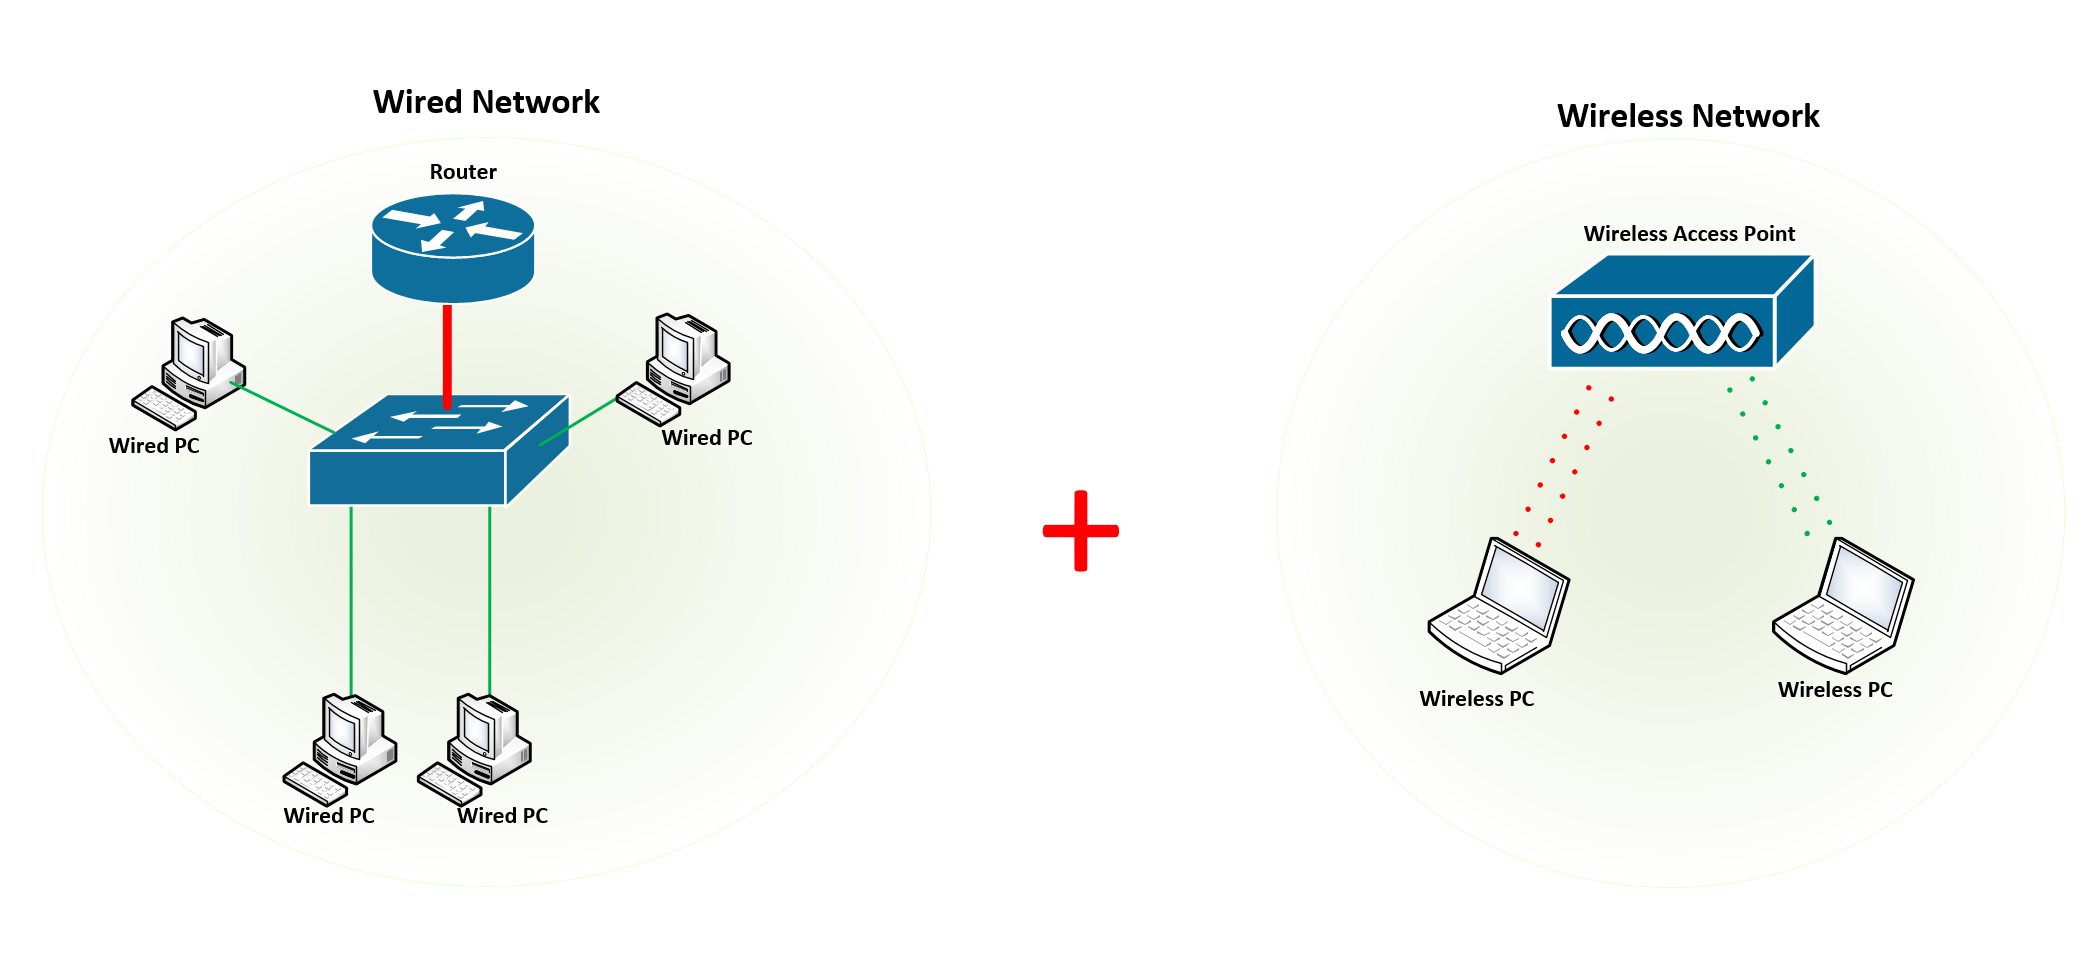 [DIAGRAM_4FR]  How to Connect a Wireless Access Point to a Wired Network Step by Step | Wireless Network Wiring Diagram |  | Expert Network Consultant